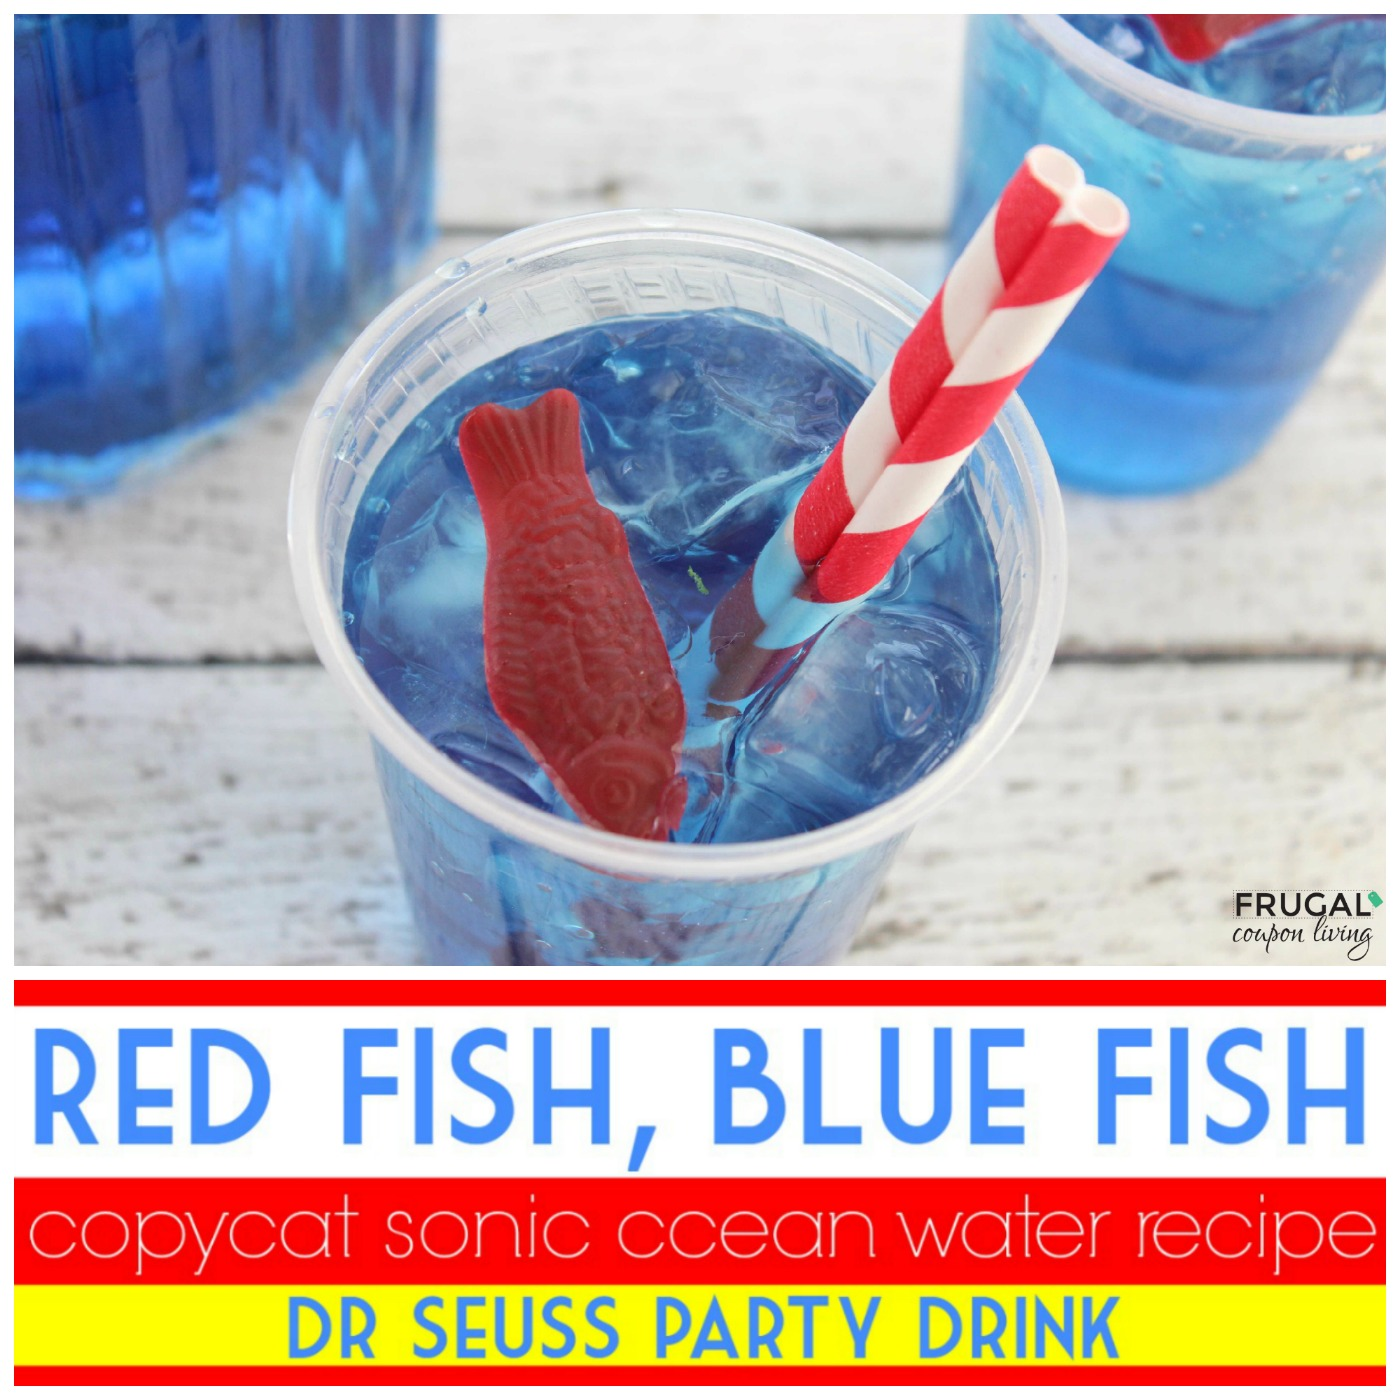 IG-Dr-Seuss-Collage-Frugal-Coupon-LIving-Sonic-Ocean-Water